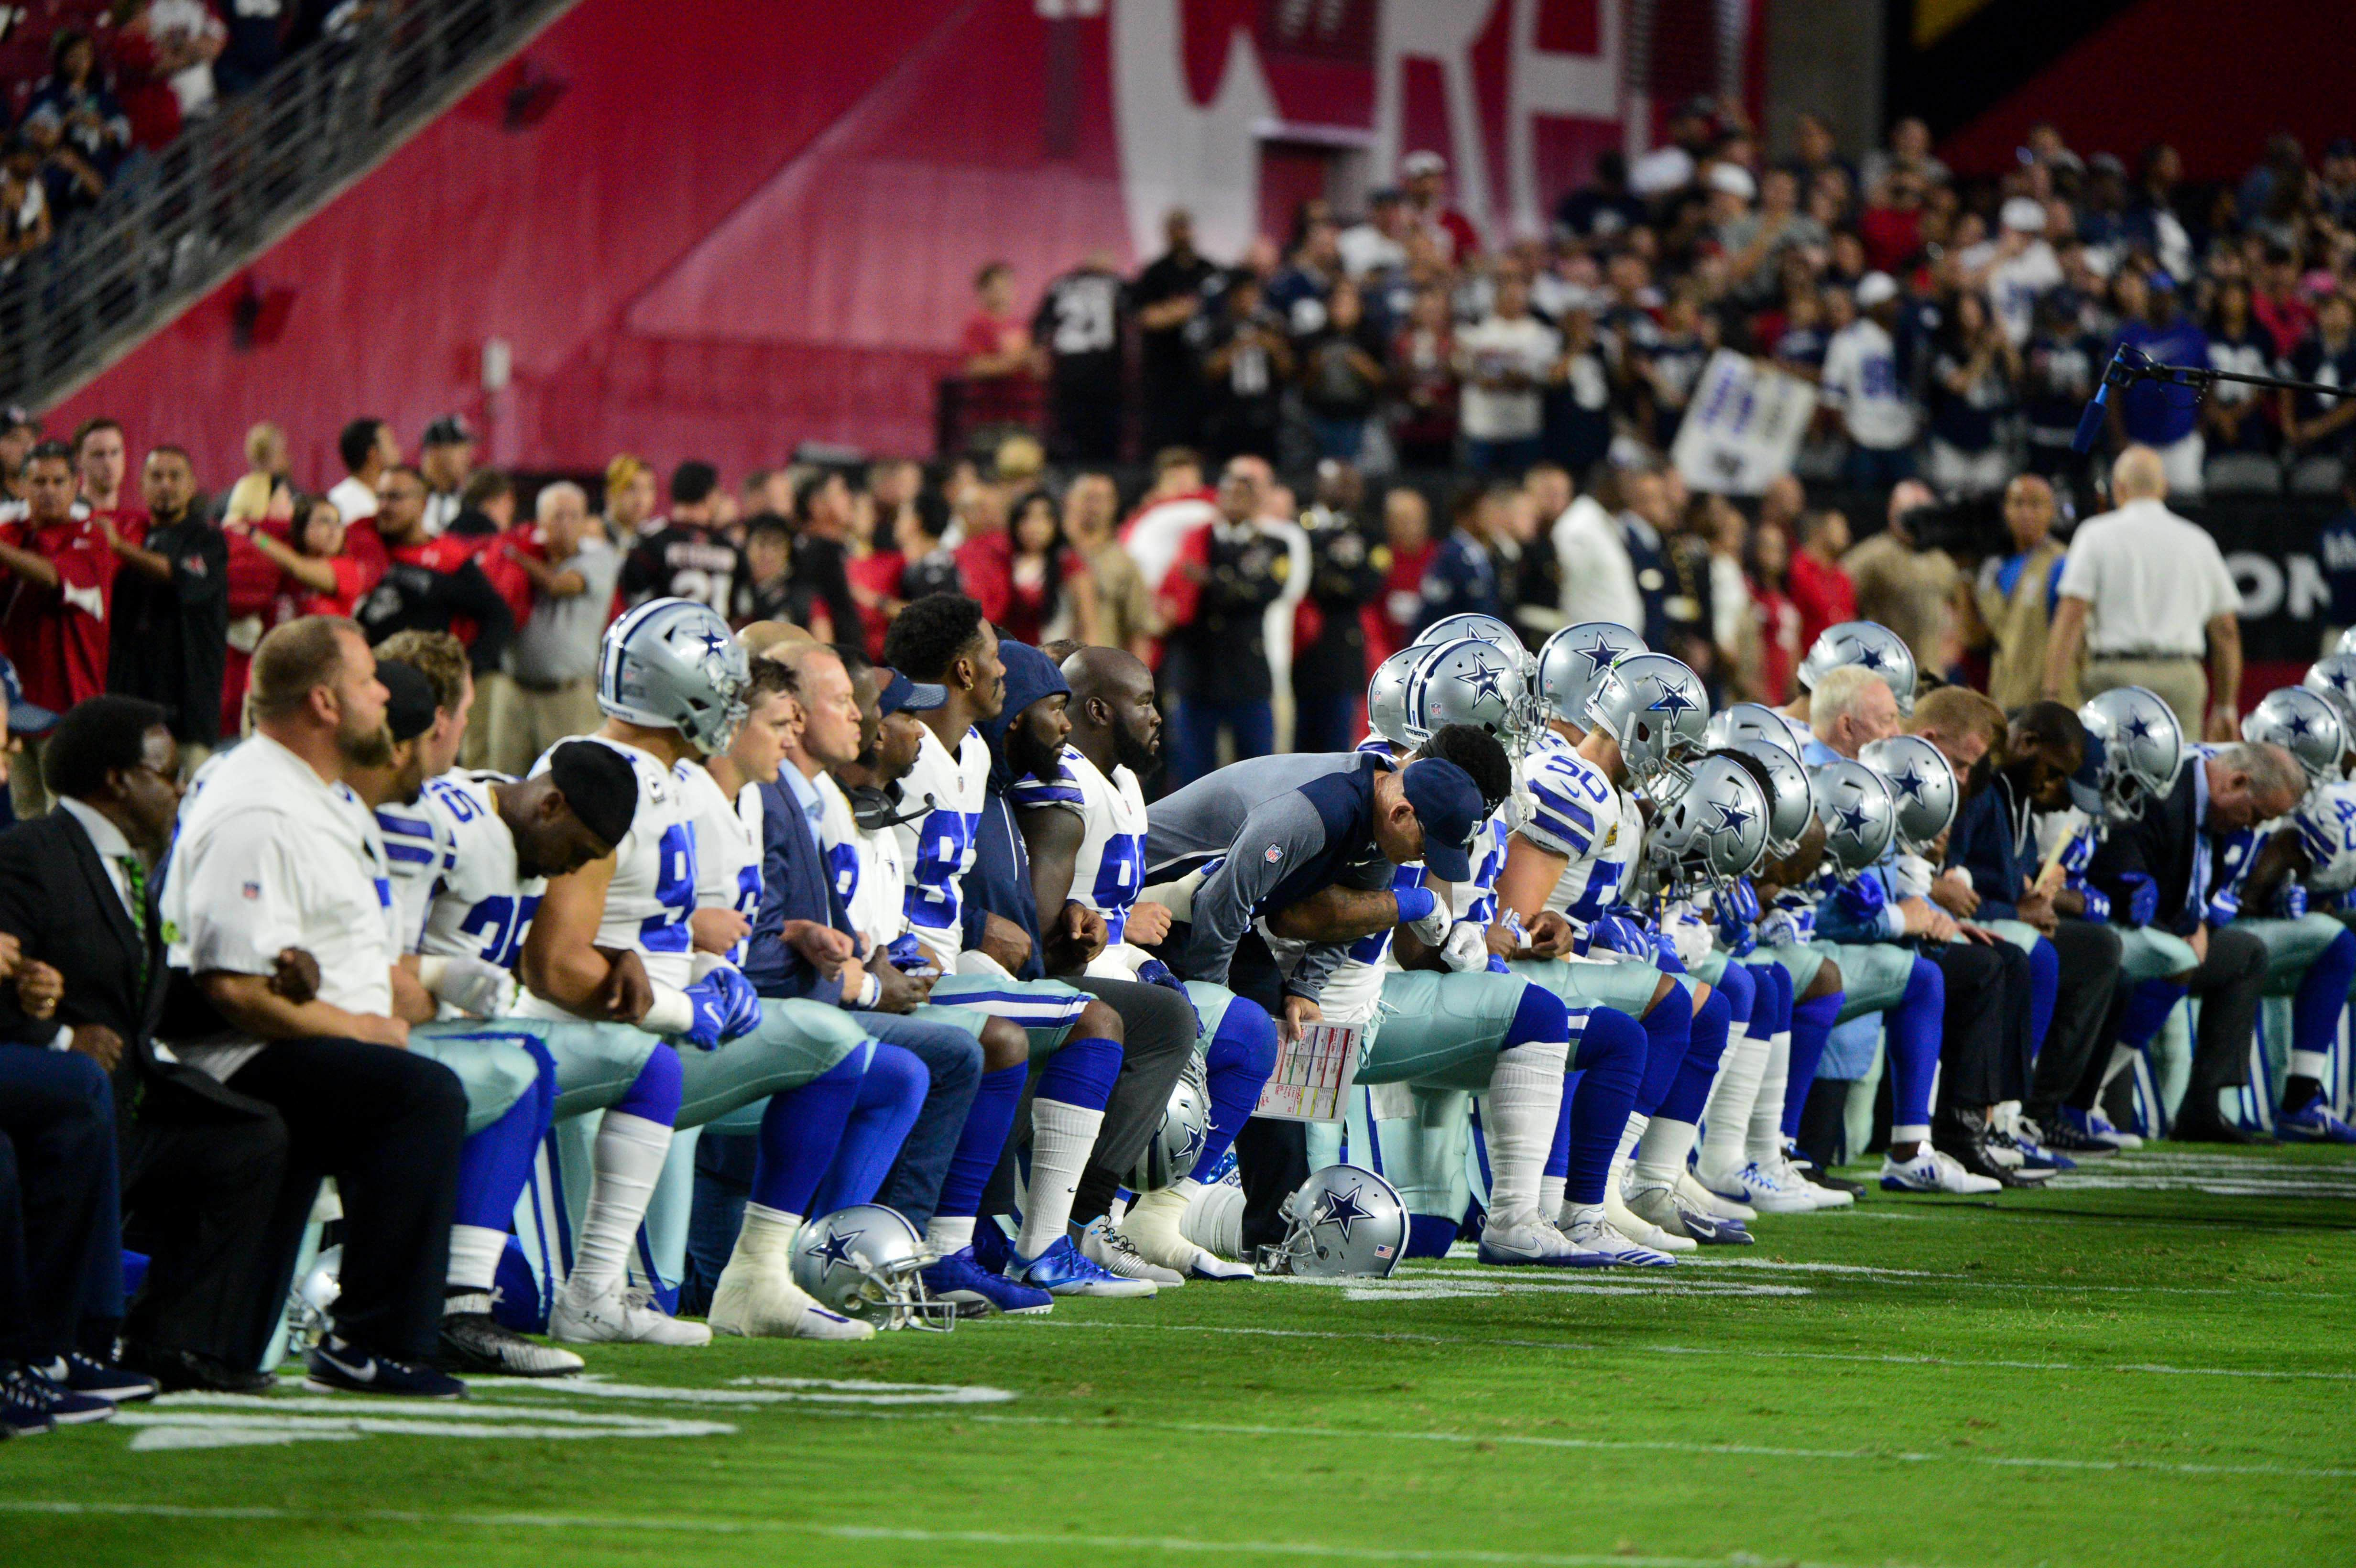 The Nfl Has Always Been Political Nfl Sunday Ticket Monday Night Football Nfl